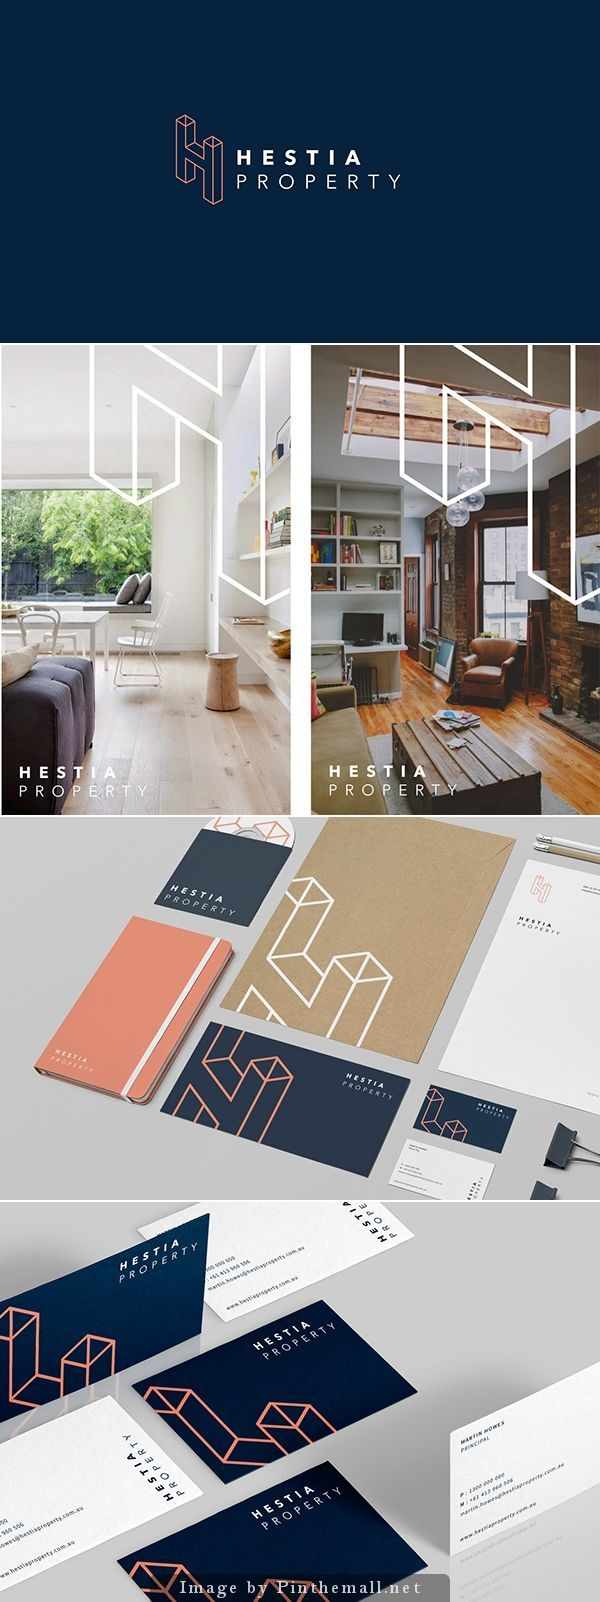 Hestia Property - Beautiful integration of the logo on the imagery without…